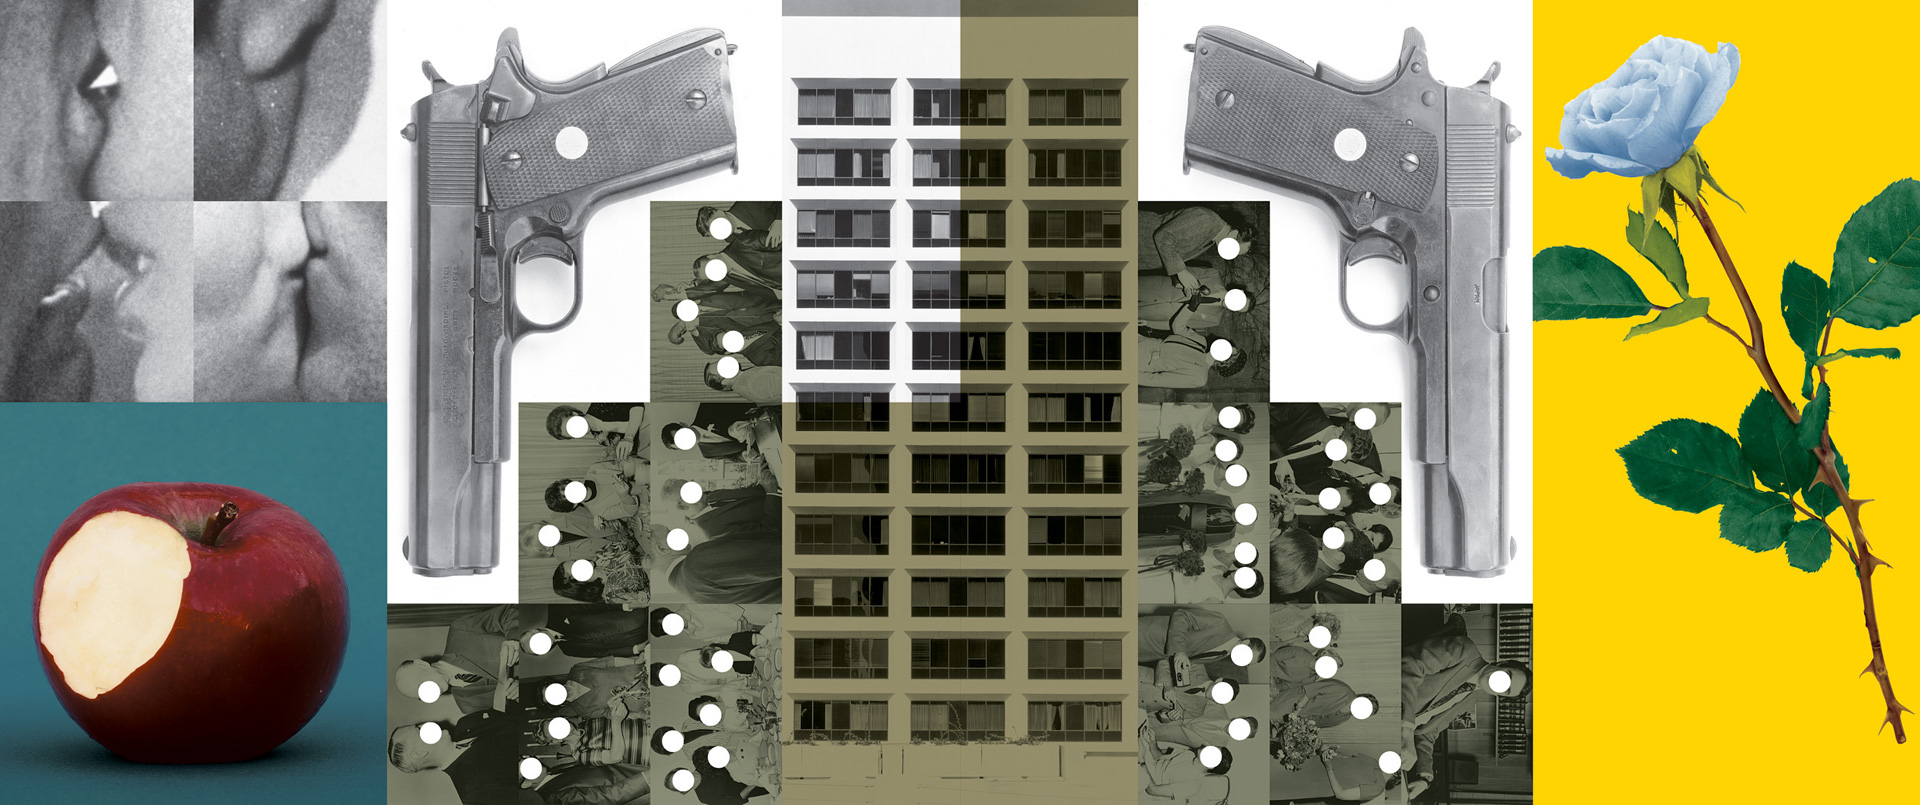 John Baldessari - Buildings=Guns=People: Desire, Knowledge, and Hope (with Smog), 1985, black-and-white and color photographs with vinyl paint and oil tint, mounted on five panels